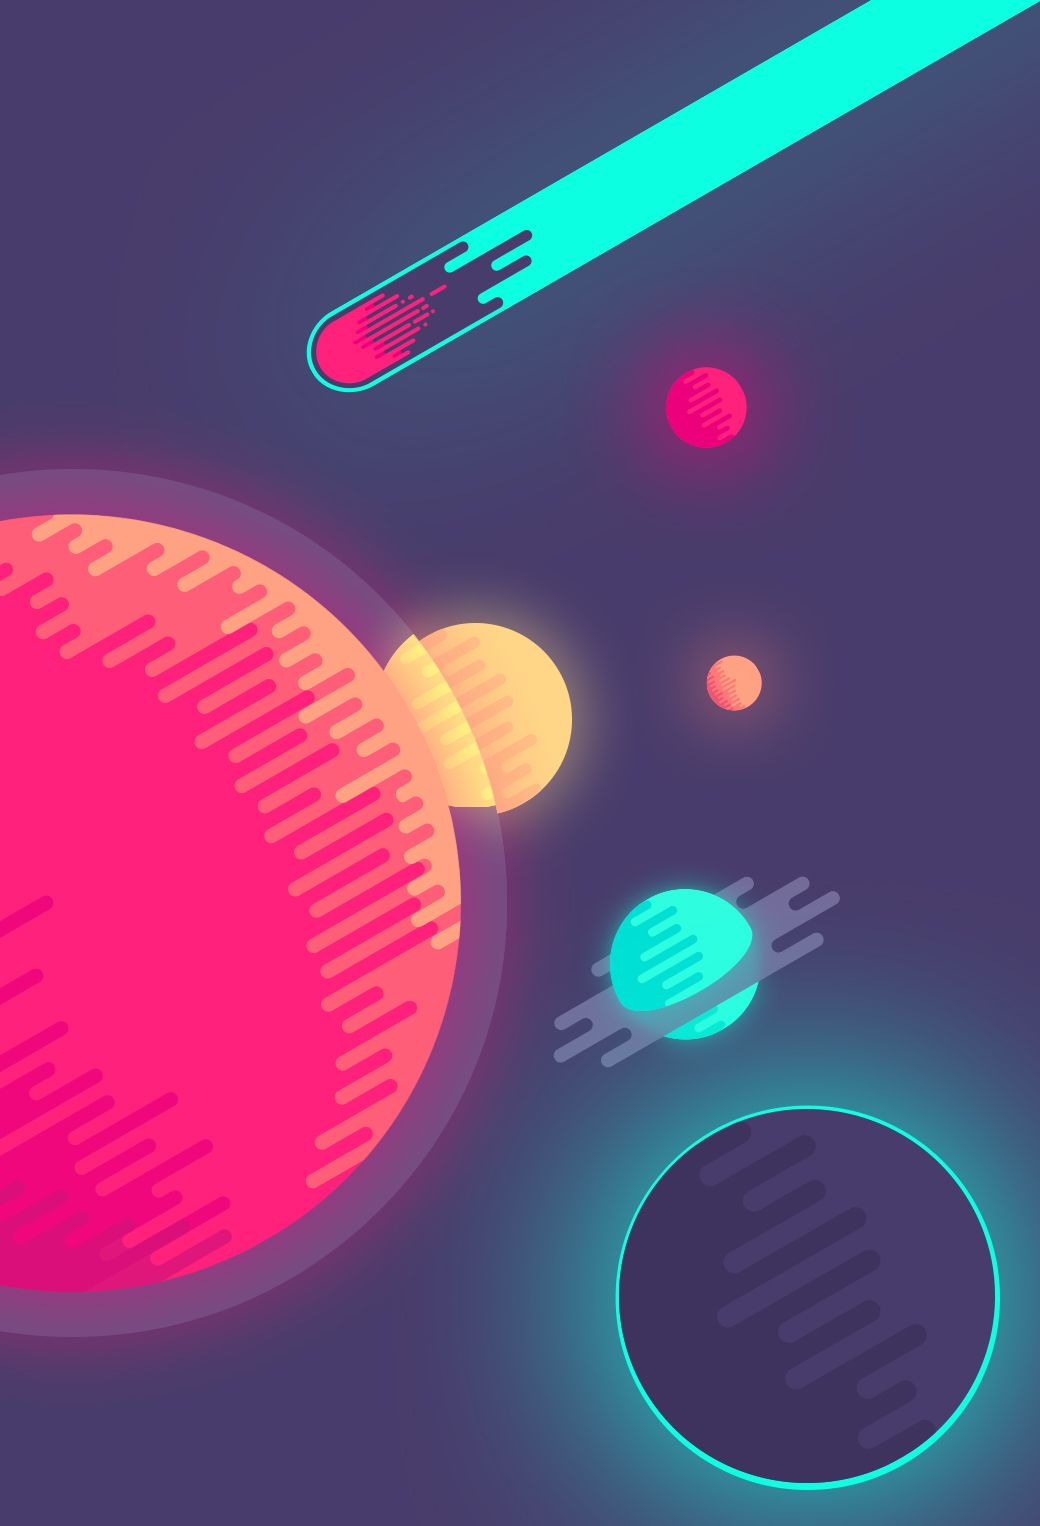 Space Wallpaper Pinterest